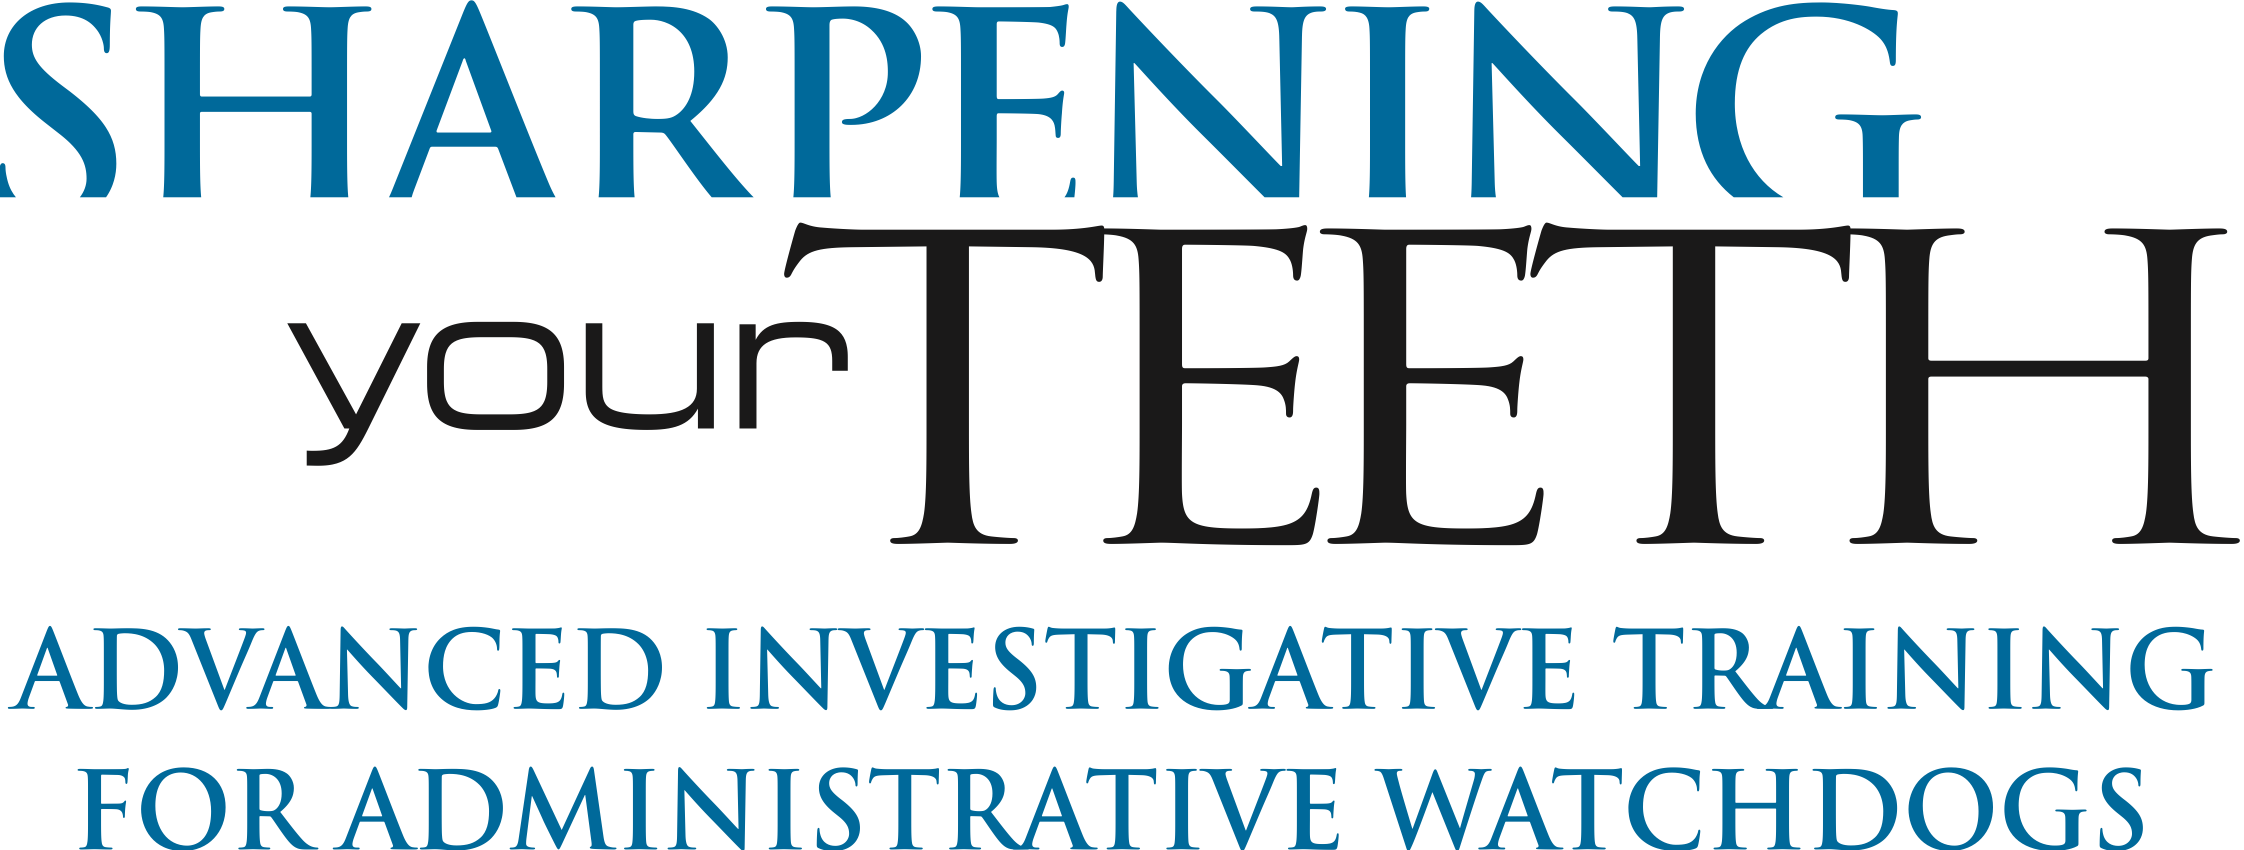 Logo for Sharpening Your Teeth: Advanced Investigative Training for Administrative Watchdogs